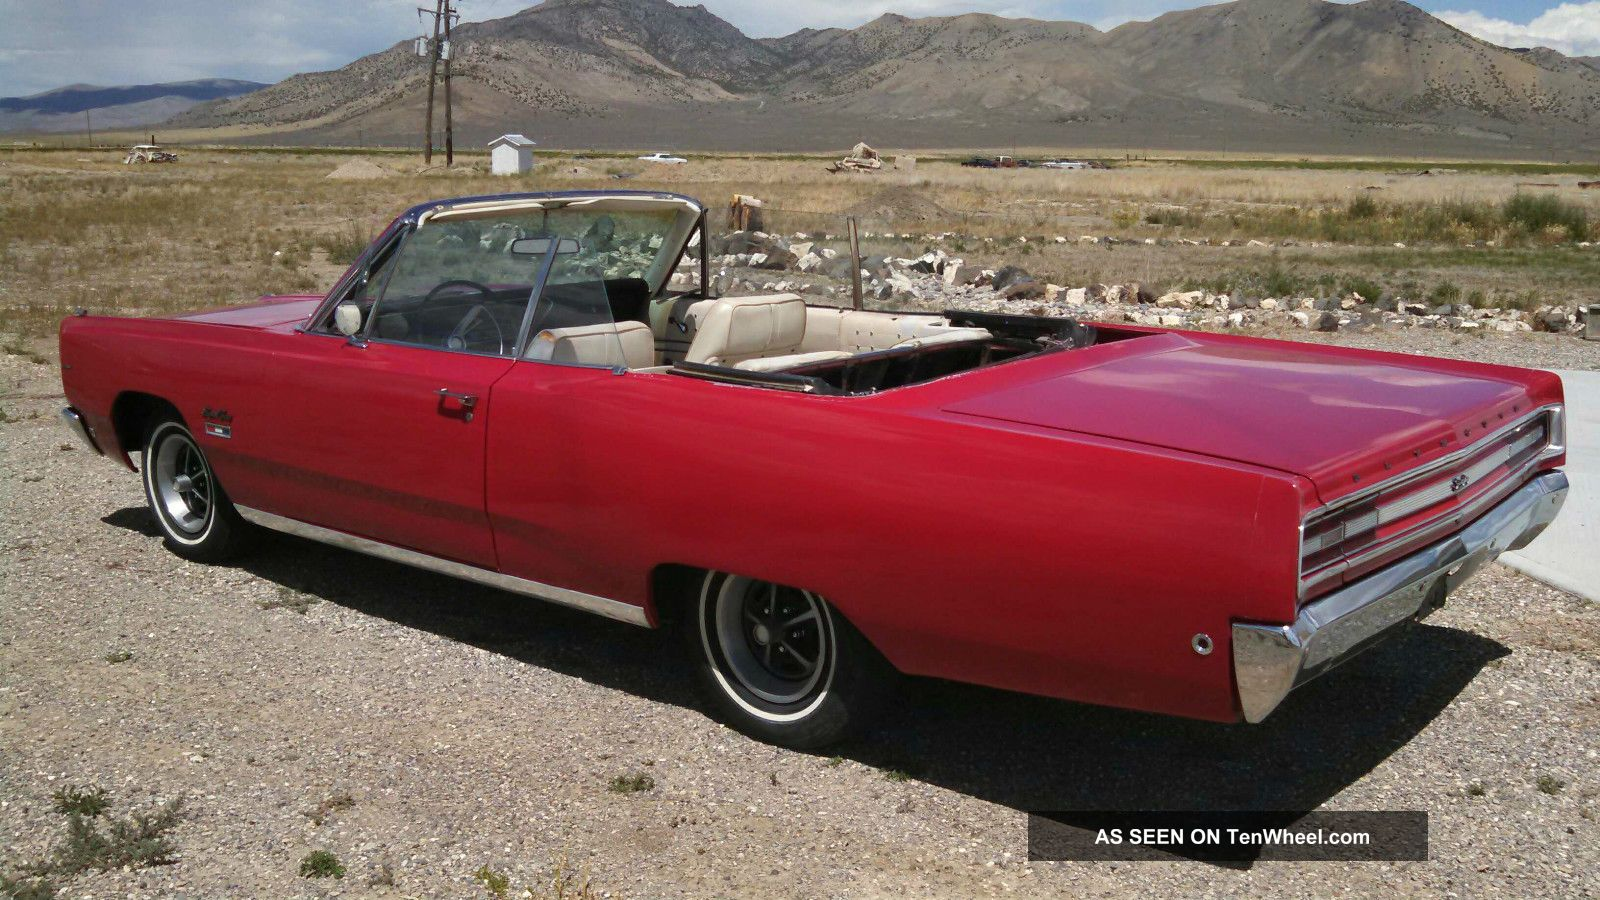 1968 Sport Fury Convertible Fury photo